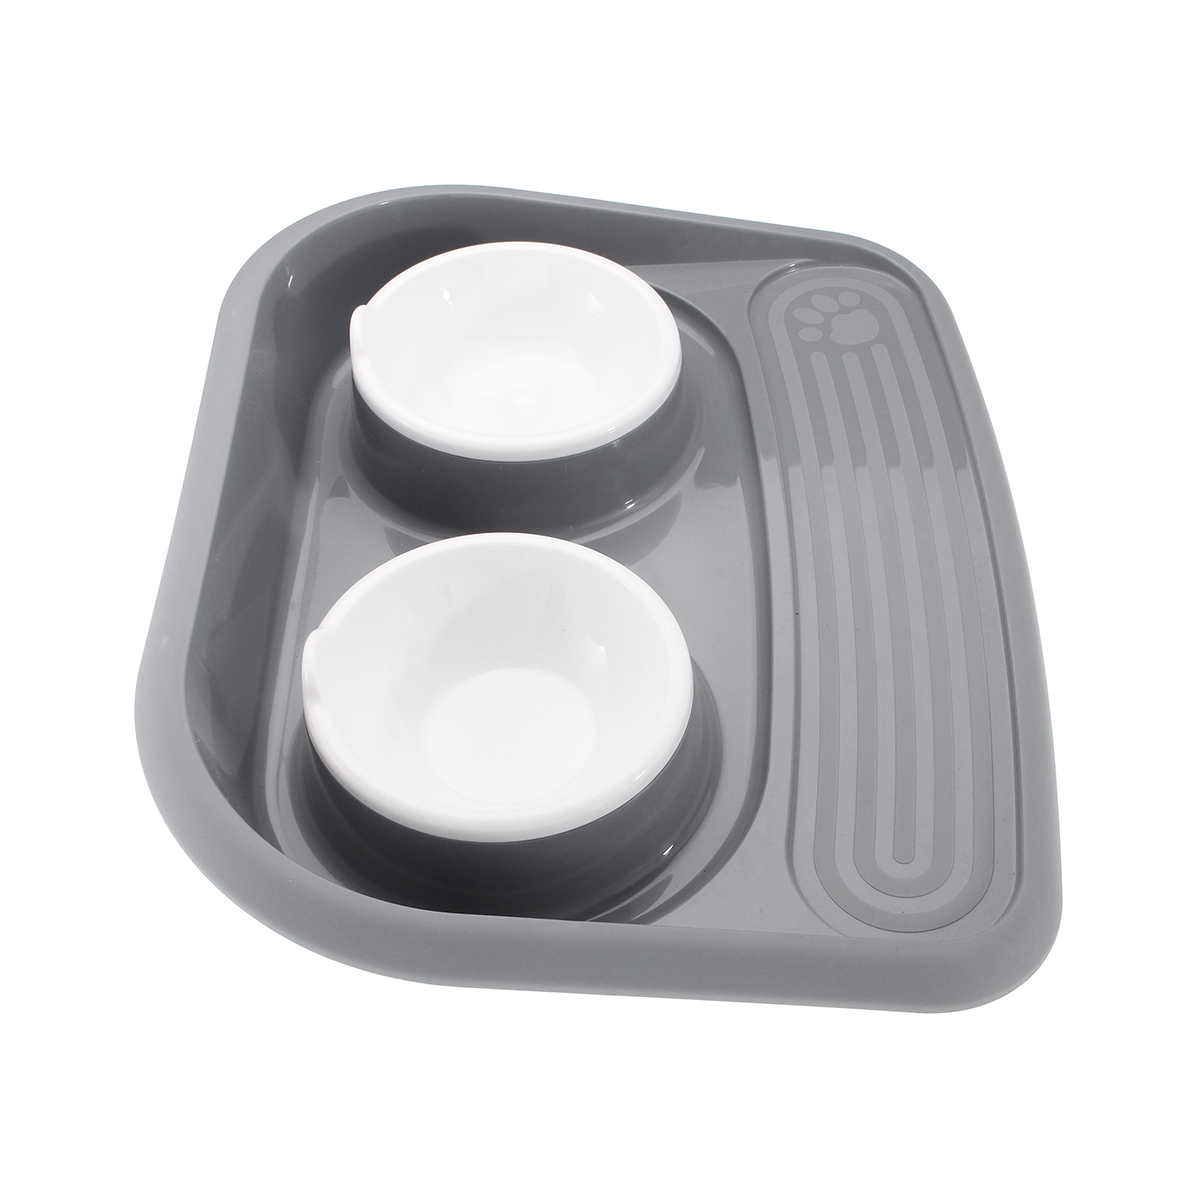 Plastic Pets Feeder Bowl Dog/Cat Feed Drink Double Dish Food Water Splash Proof Pet Bowl